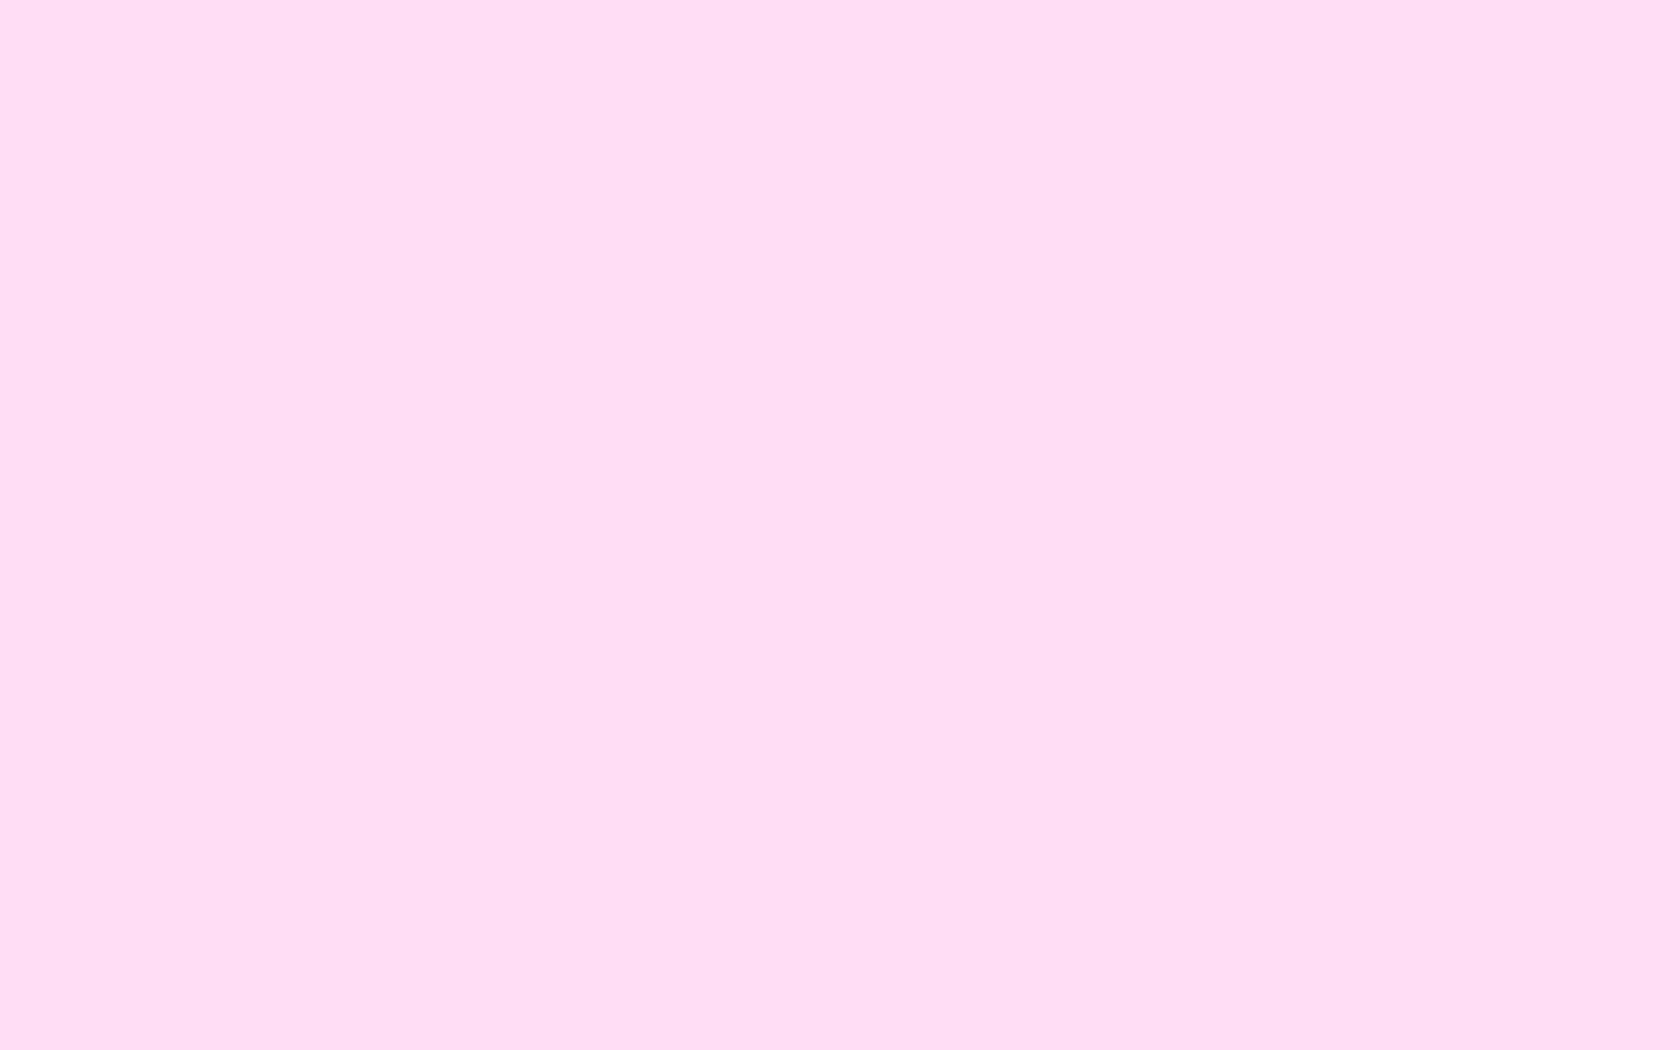 1680x1050 Pink Lace Solid Color Background